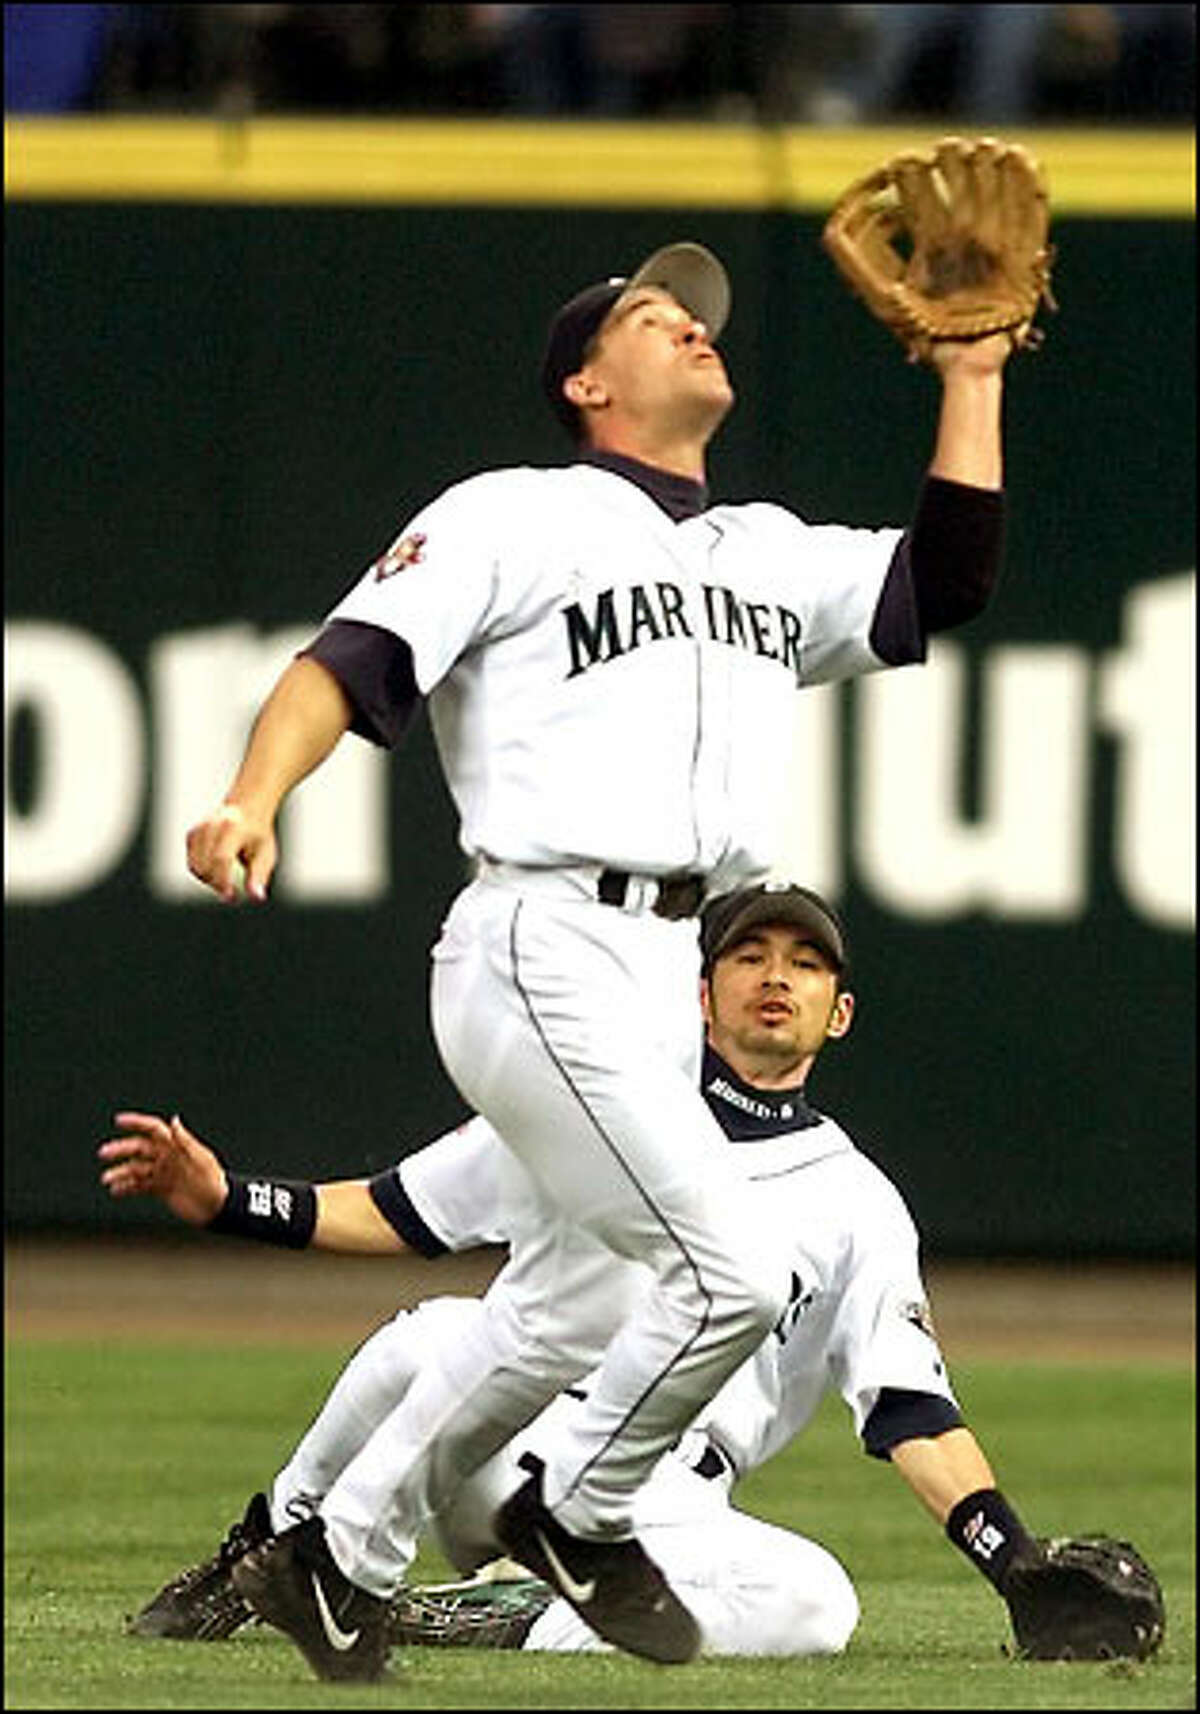 Ichiro Suzuki, below, barely avoids a collision with second baseman Bret Boone, who came down with the pop fly hit by Ryan Klesko in the sixth inning of Friday's game against San Diego.